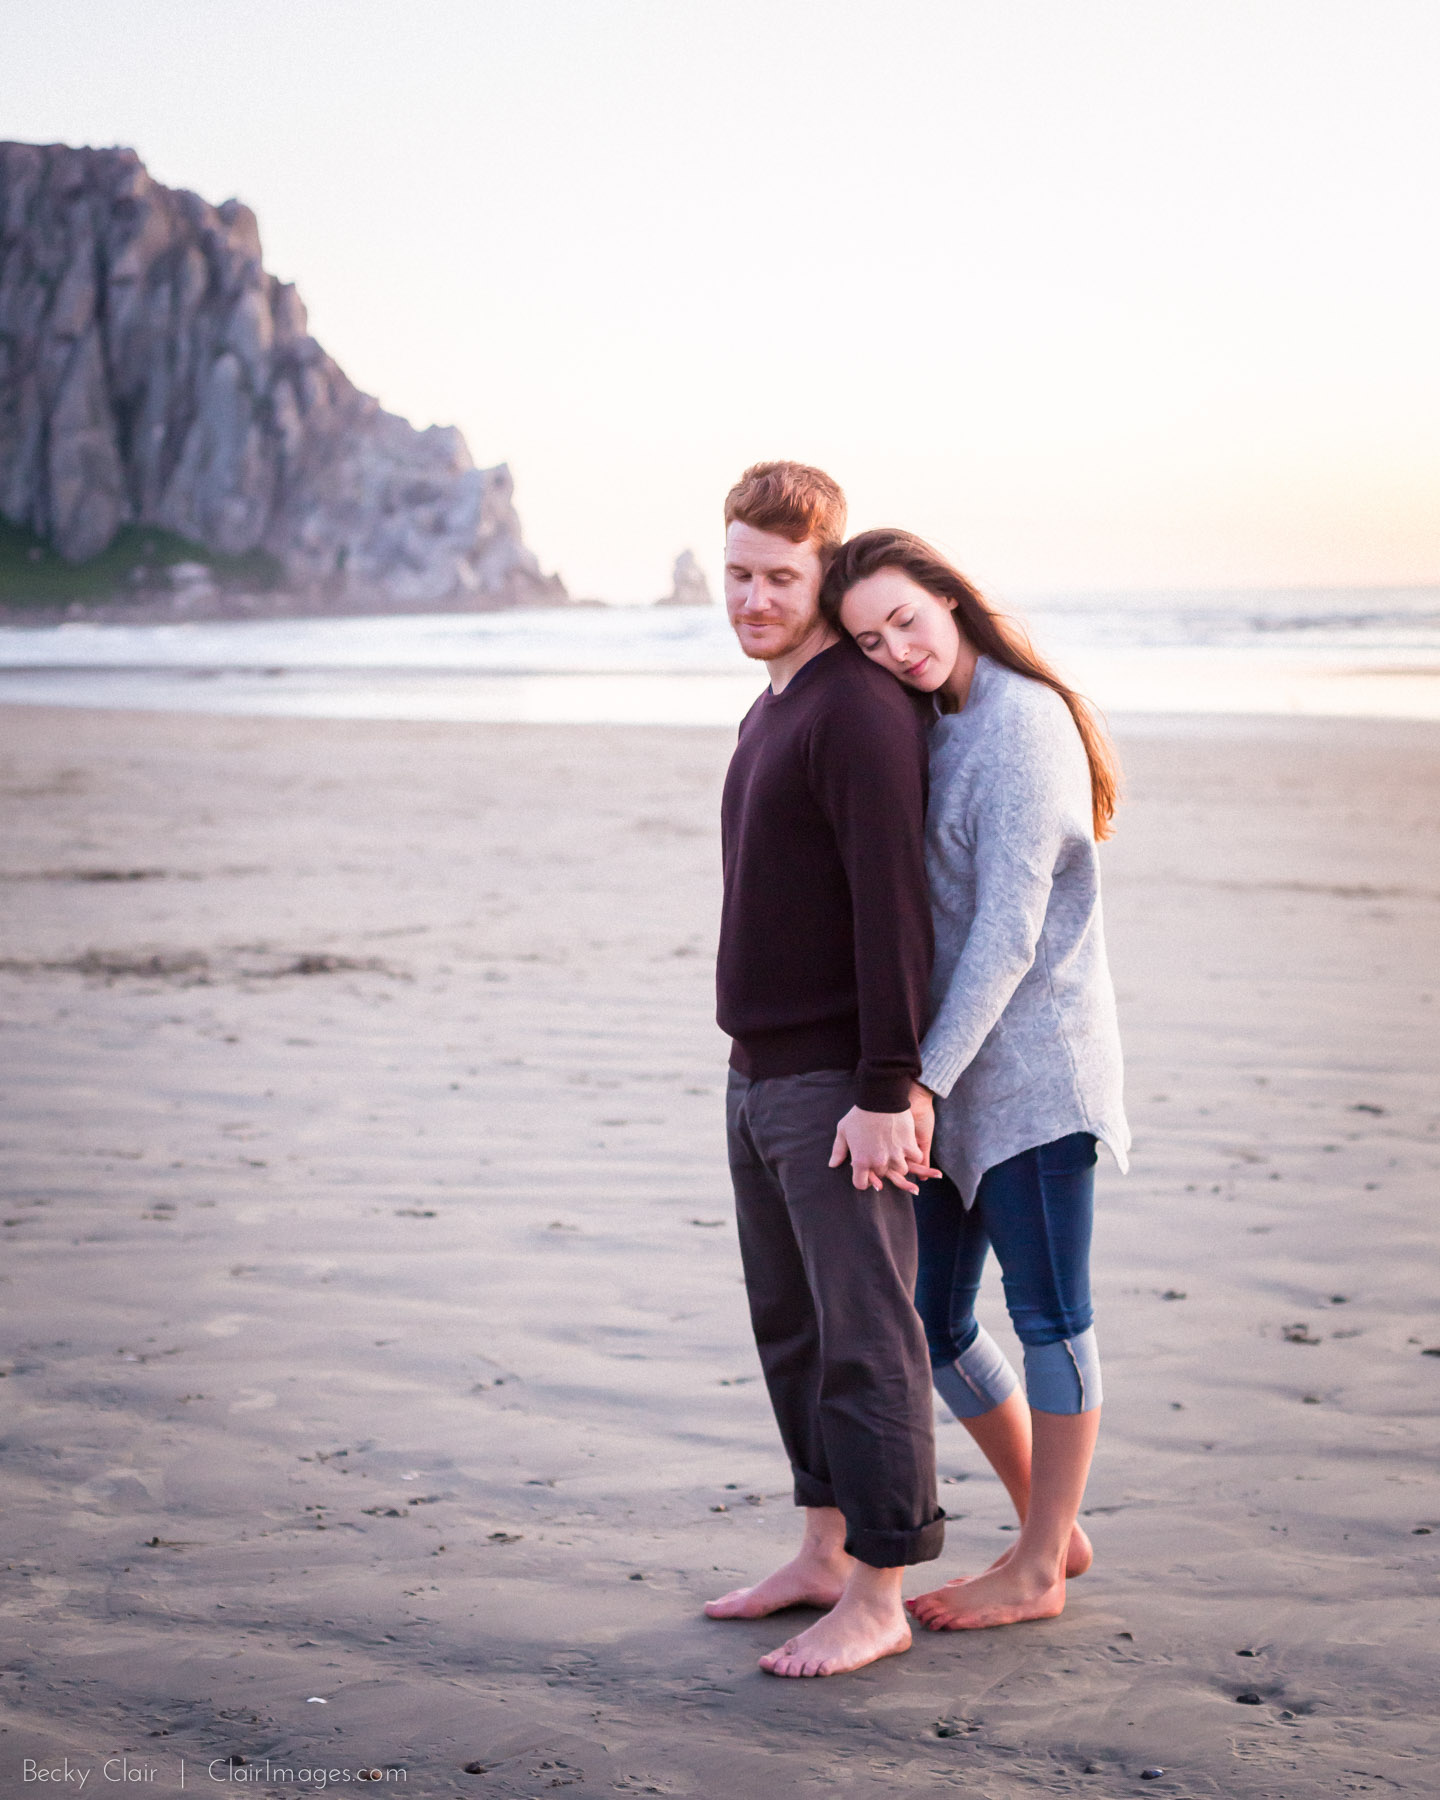 Clair Images - Engagement Sessions - Morro Bay, Ca